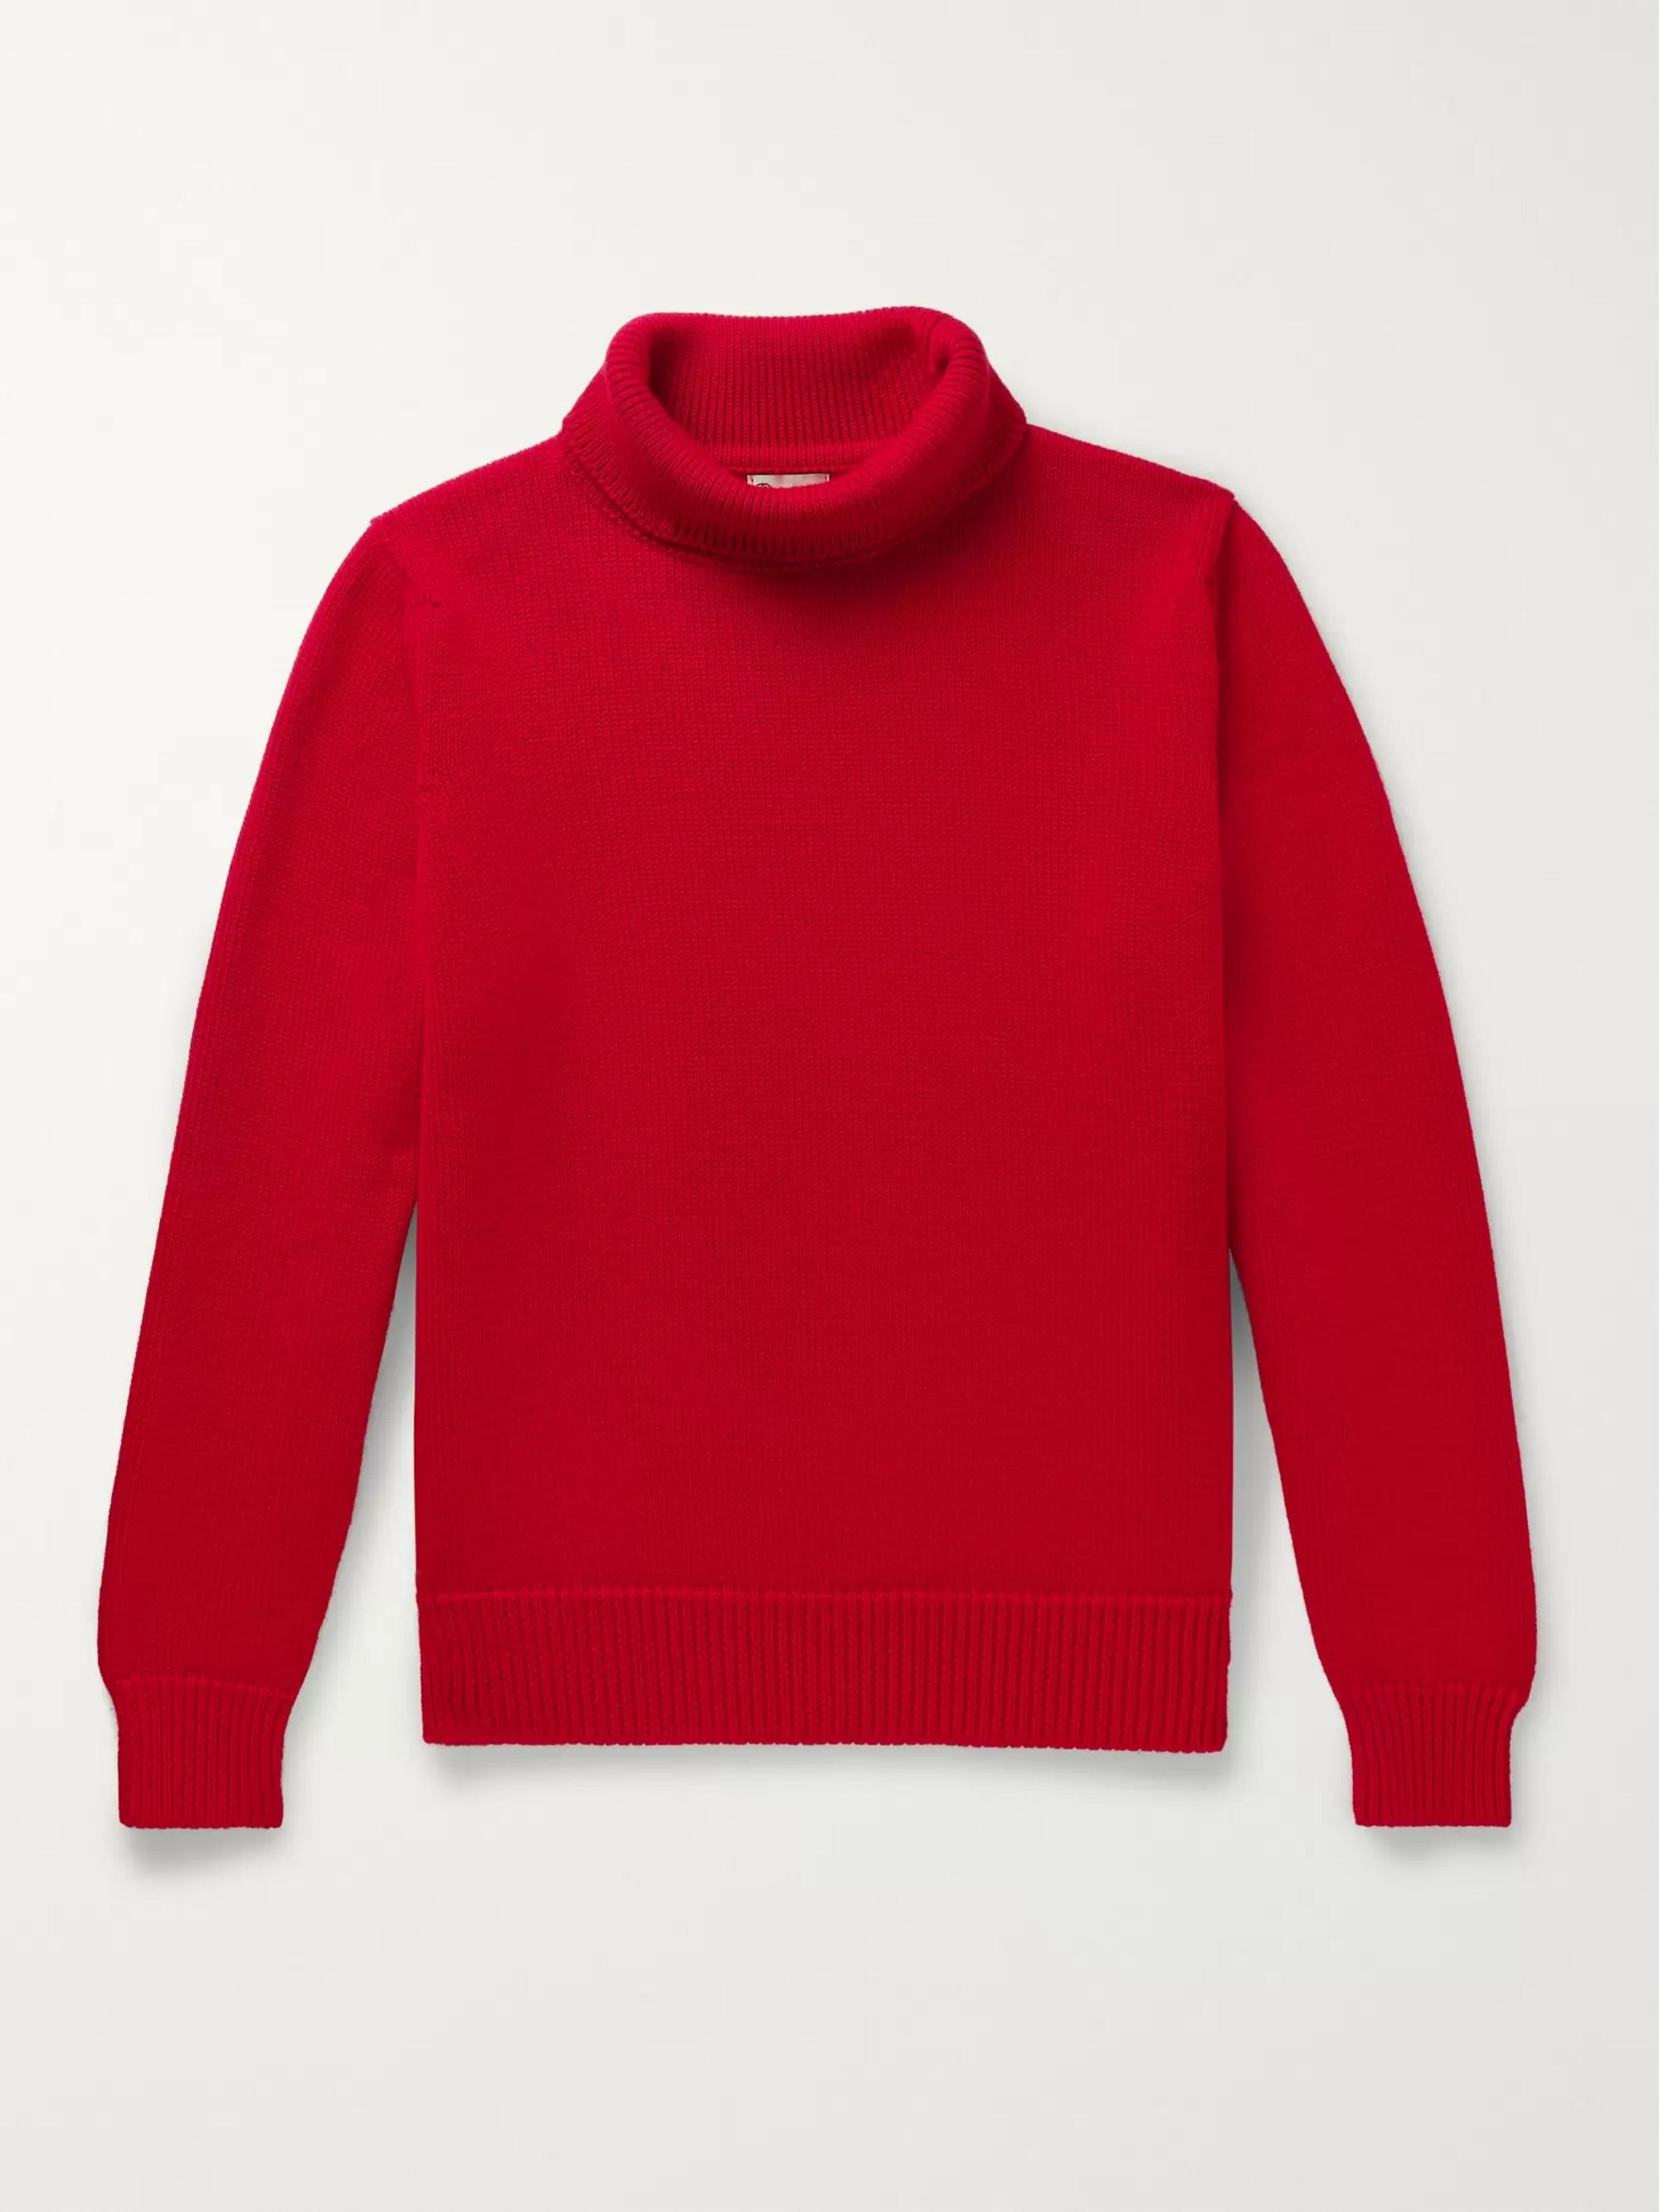 Connolly + Goodwood Merino Wool Rollneck Sweater